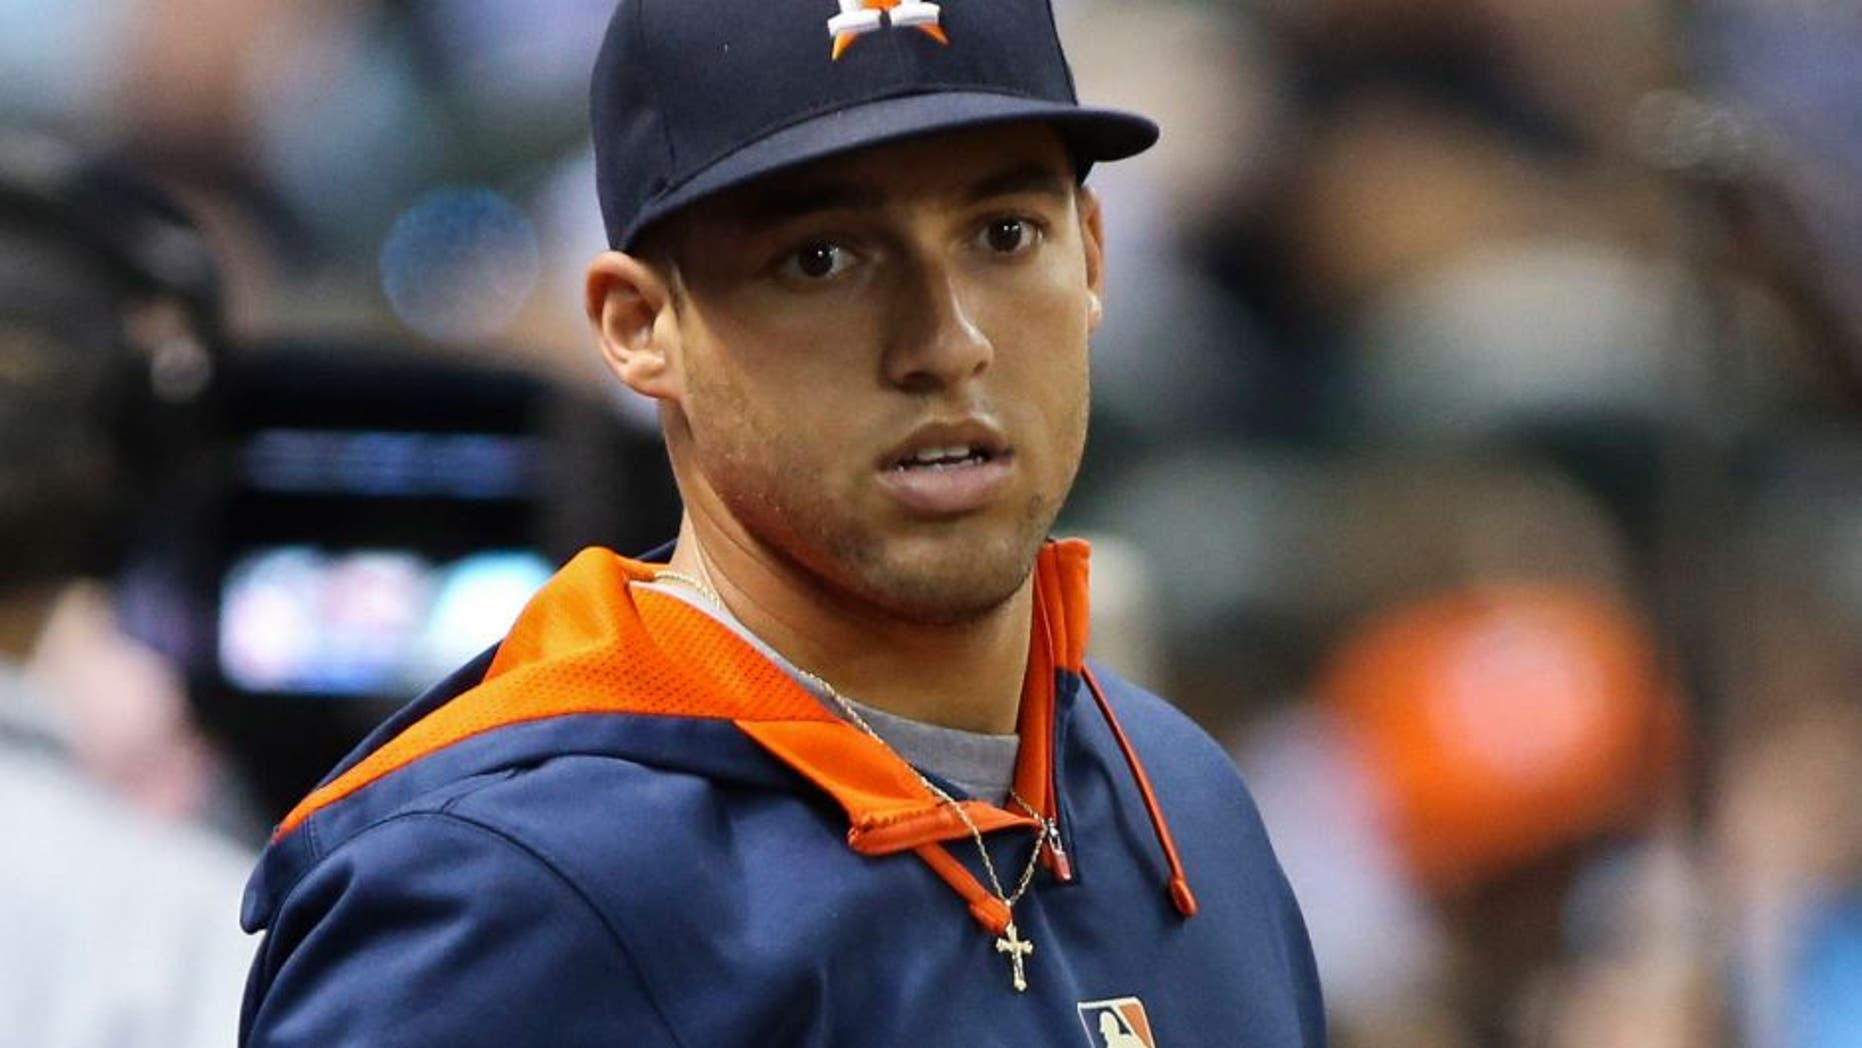 Aug 20, 2015; Houston, TX, USA; Houston Astros right fielder George Springer (4) in the dugout during the game against the Tampa Bay Rays at Minute Maid Park. Mandatory Credit: Troy Taormina-USA TODAY Sports